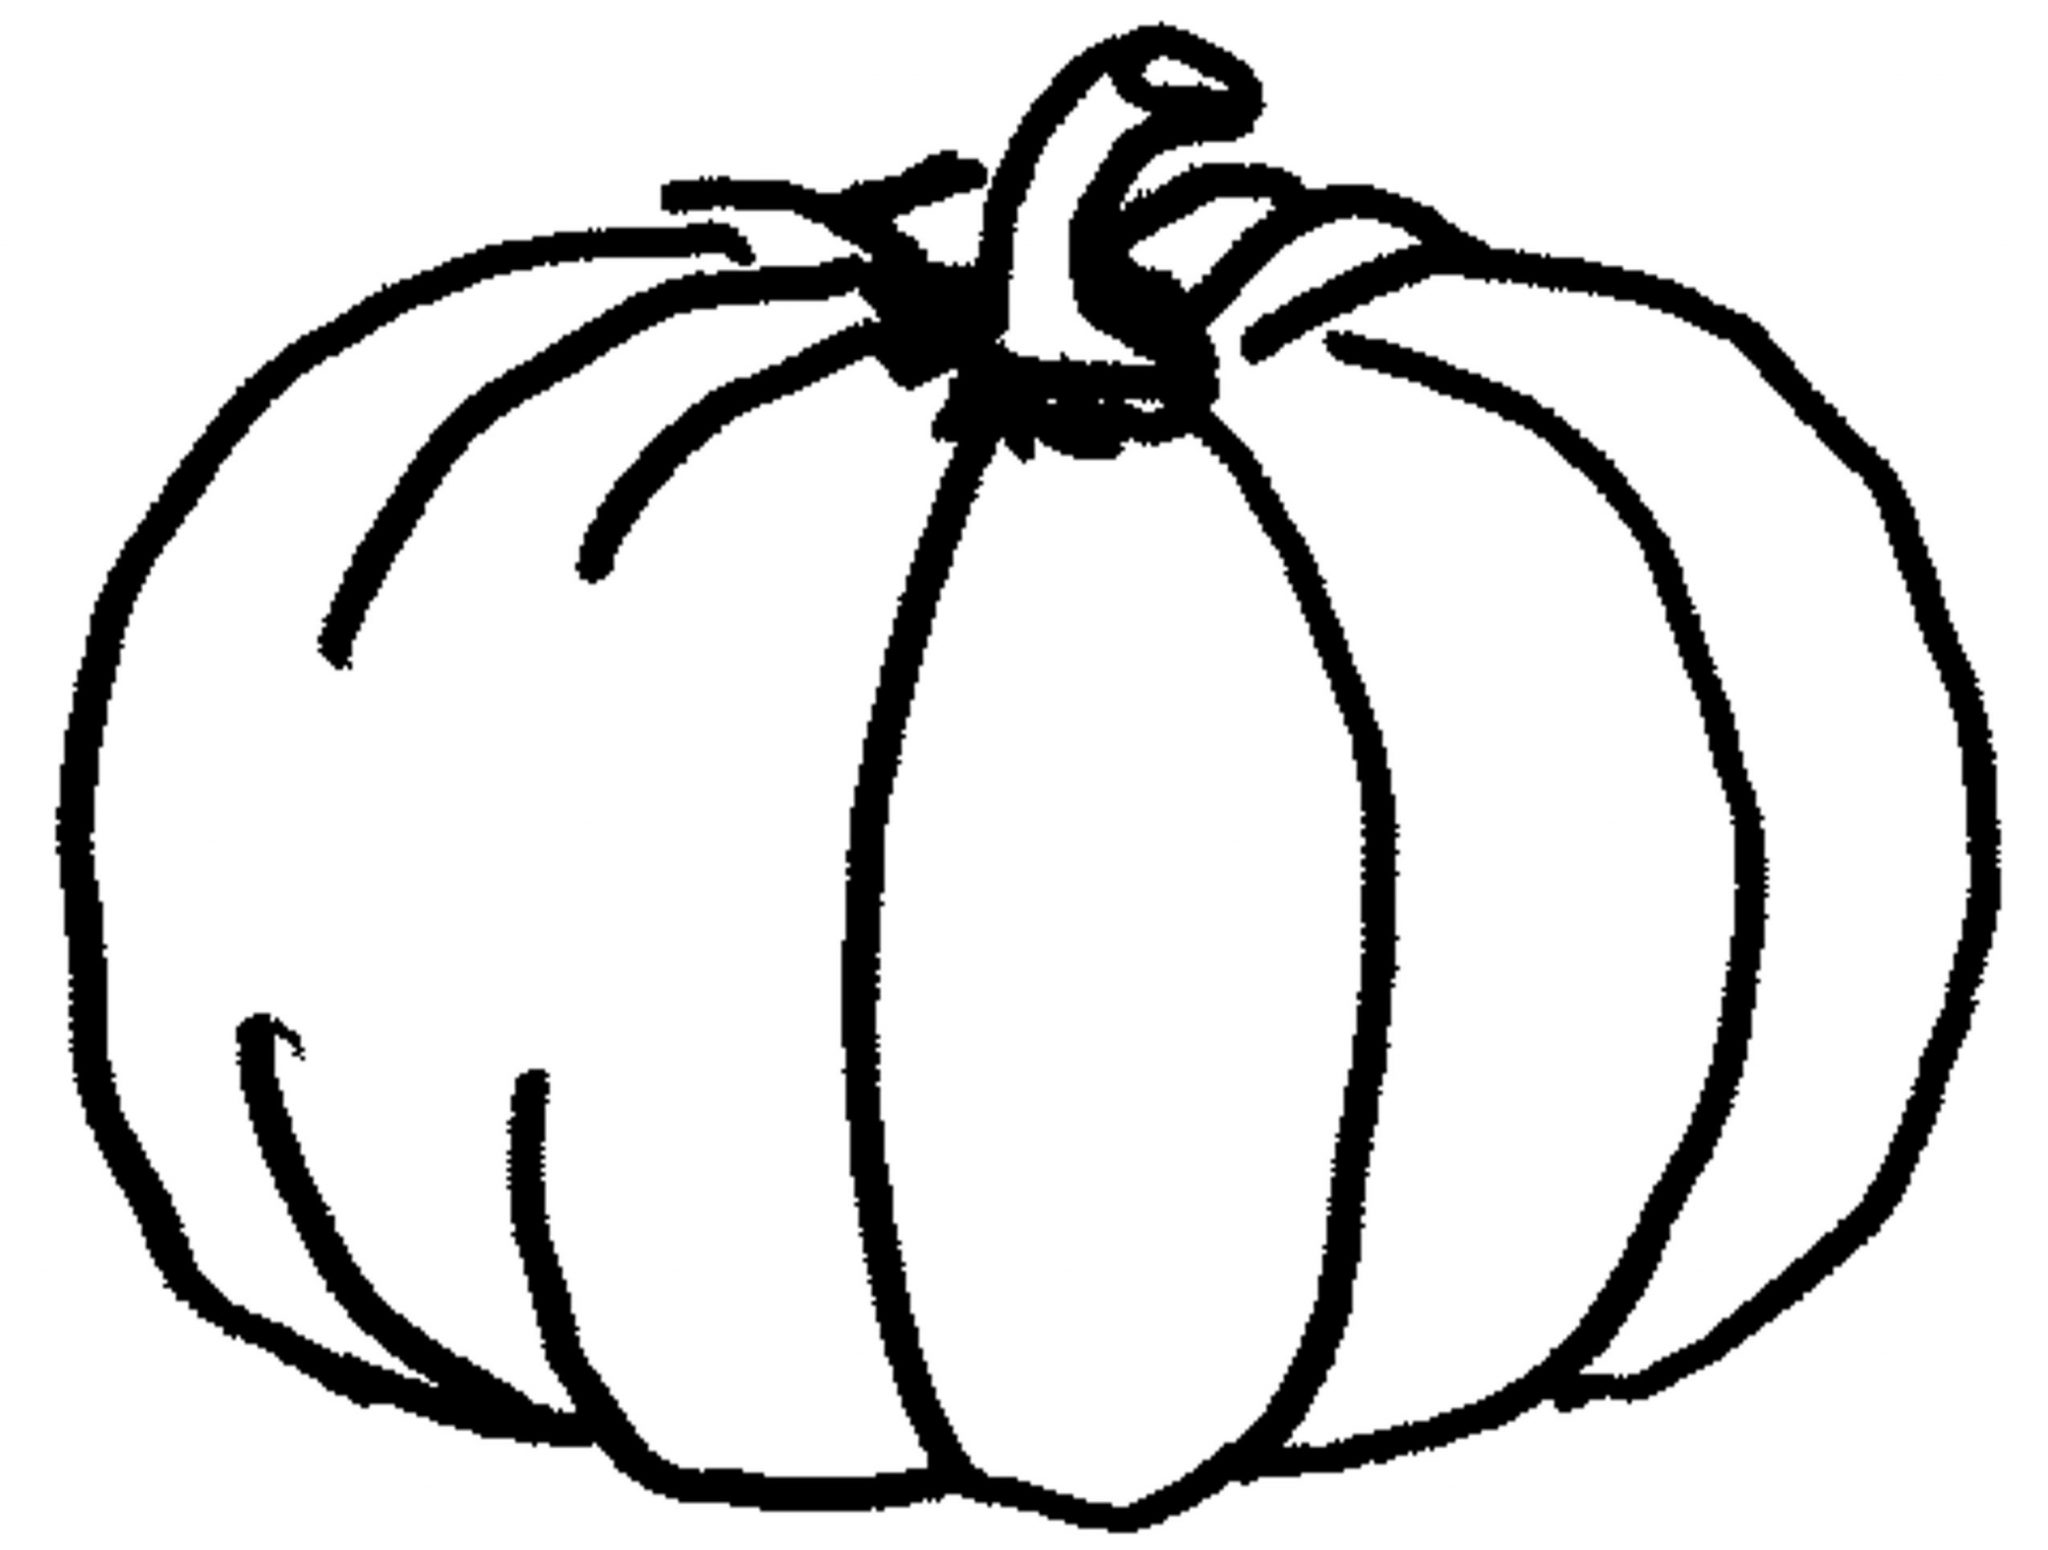 coloring pages of a pumpkin free printable pumpkin coloring pages for kids cool2bkids a pumpkin coloring pages of